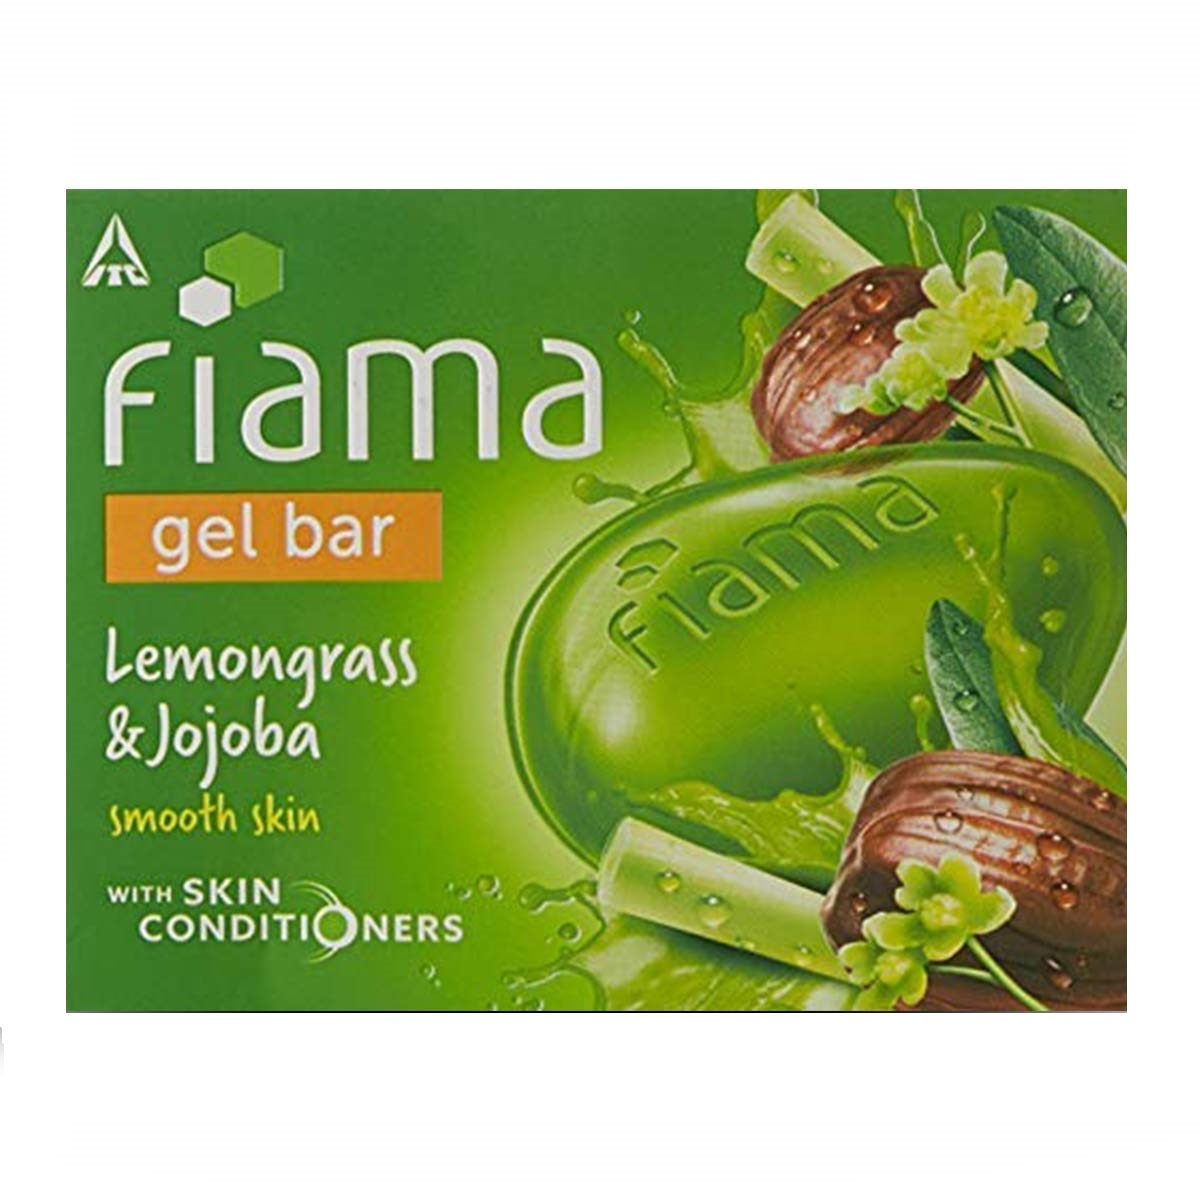 Fiama Gel Bar Lemongrass & Jojoba 1N